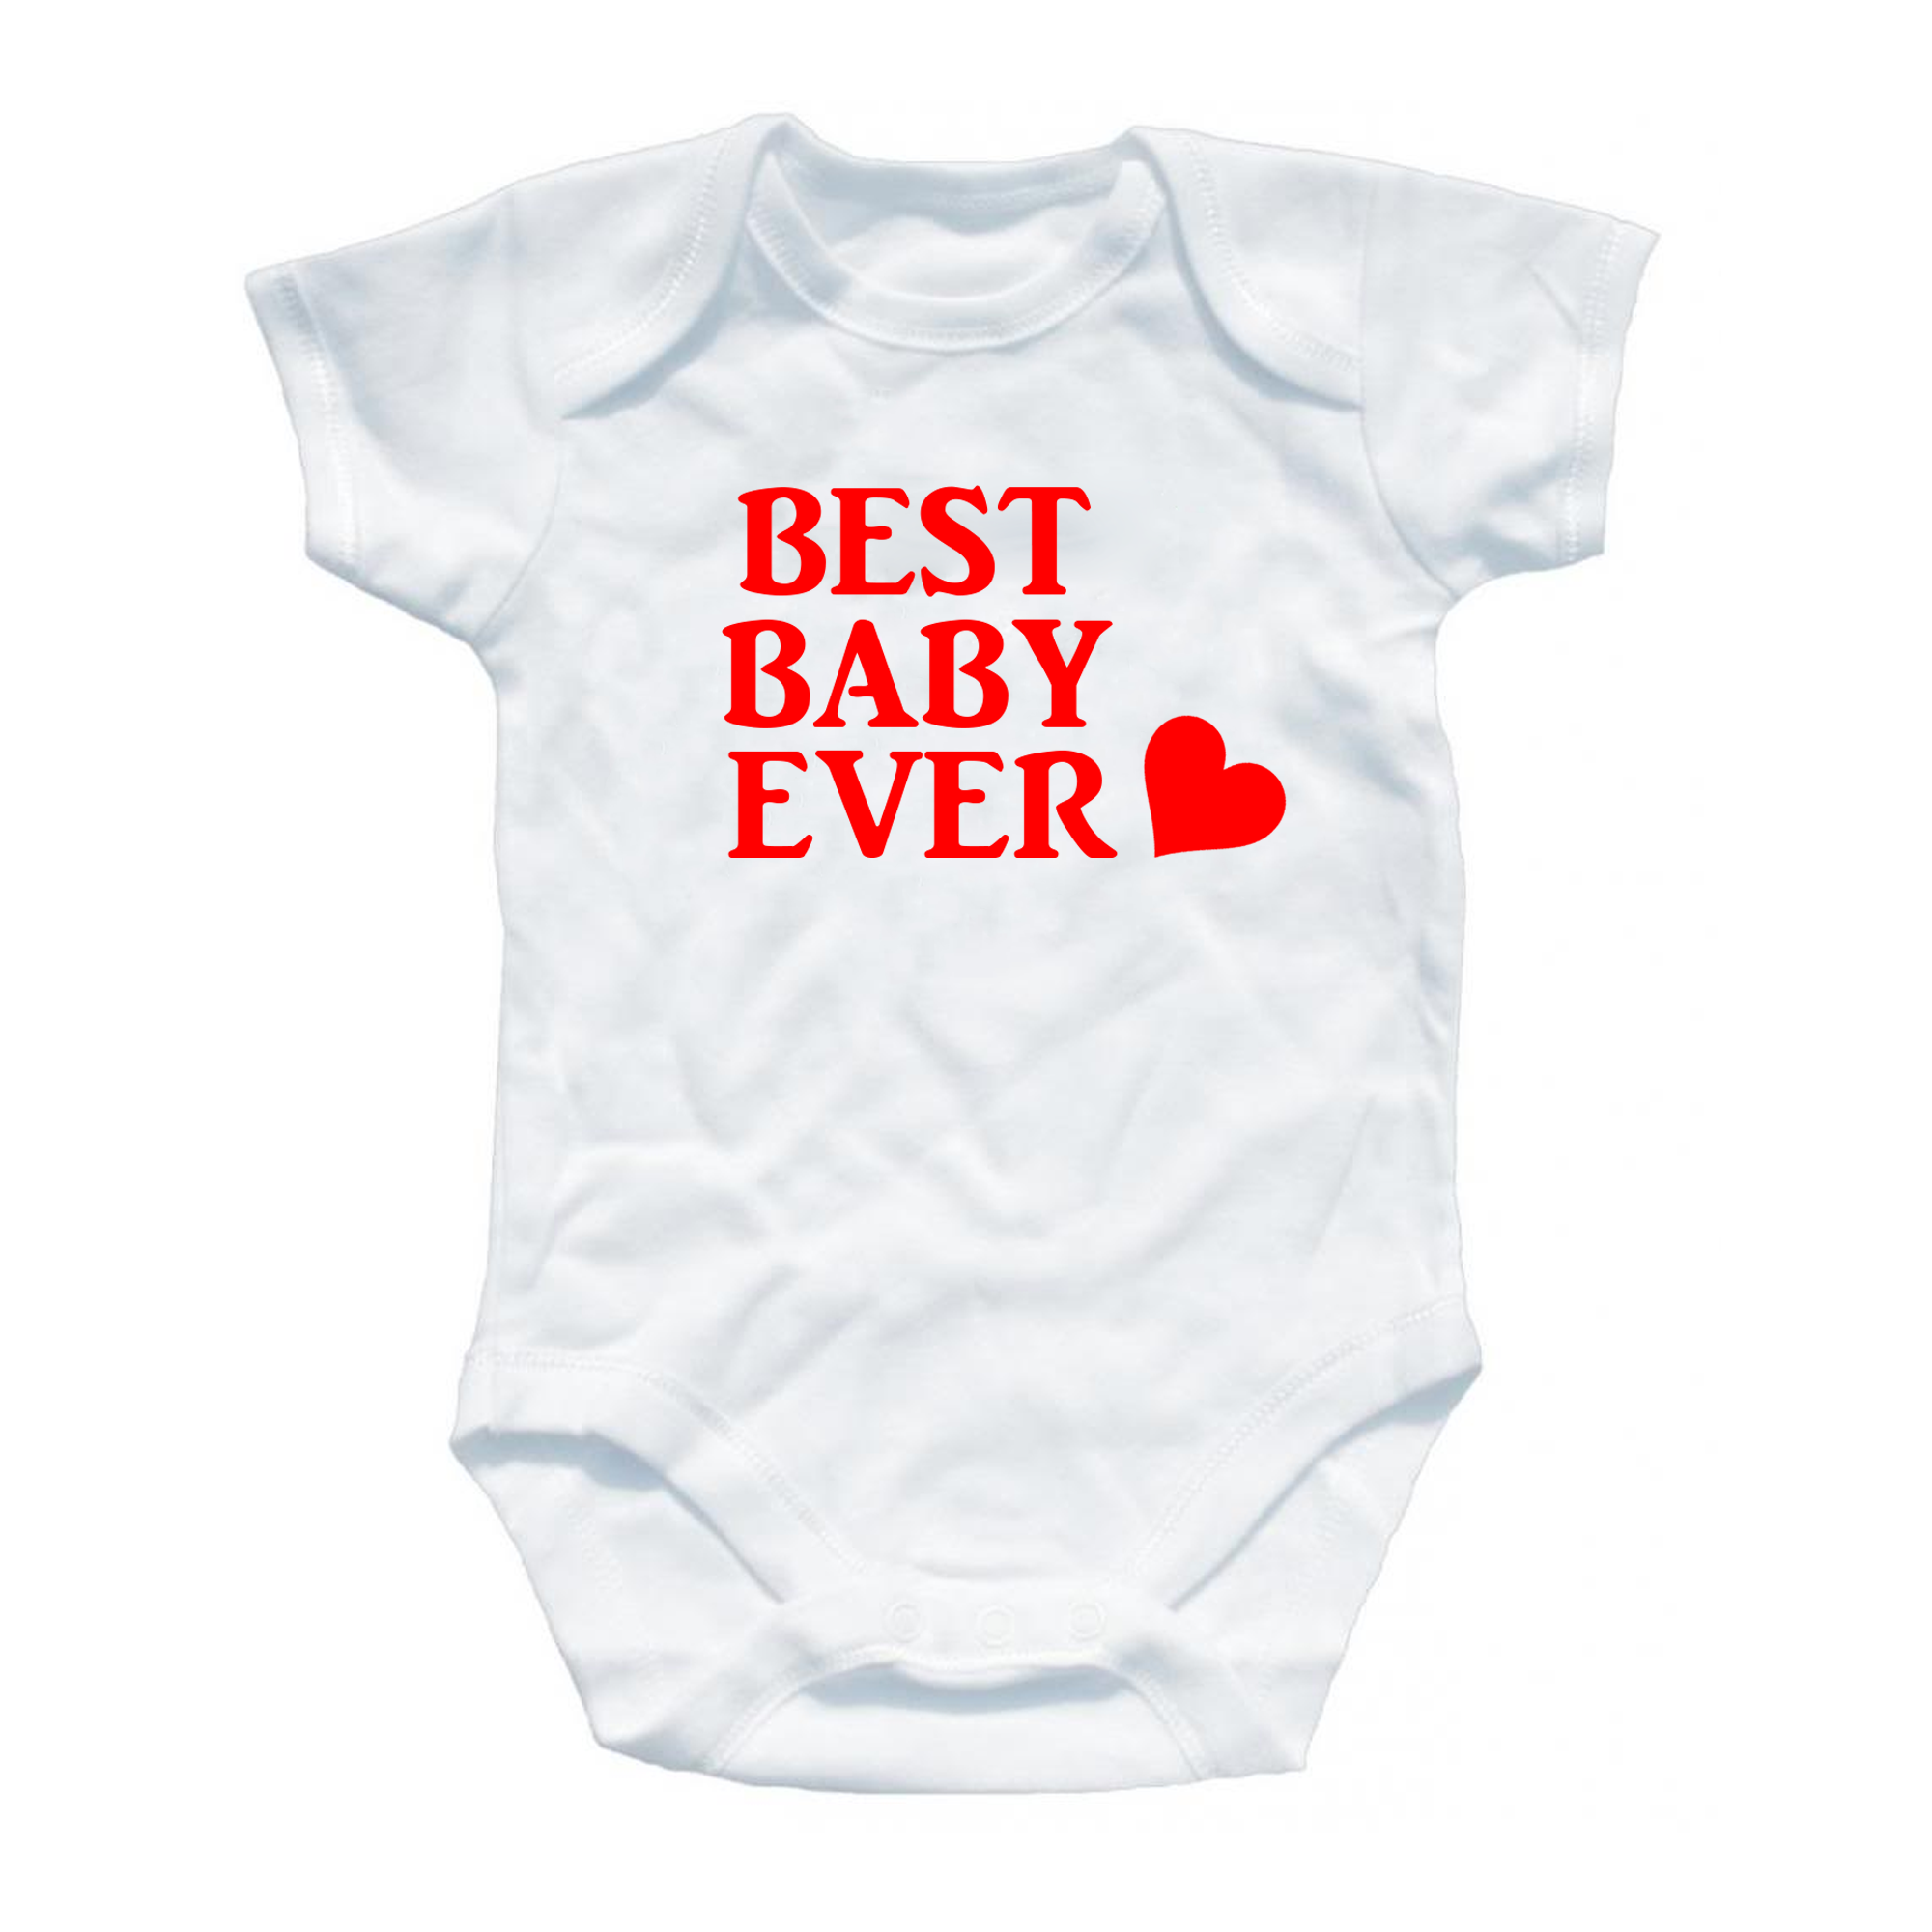 Funny Baby Gifts Uk : Best baby ever grow funny gift present boys girls